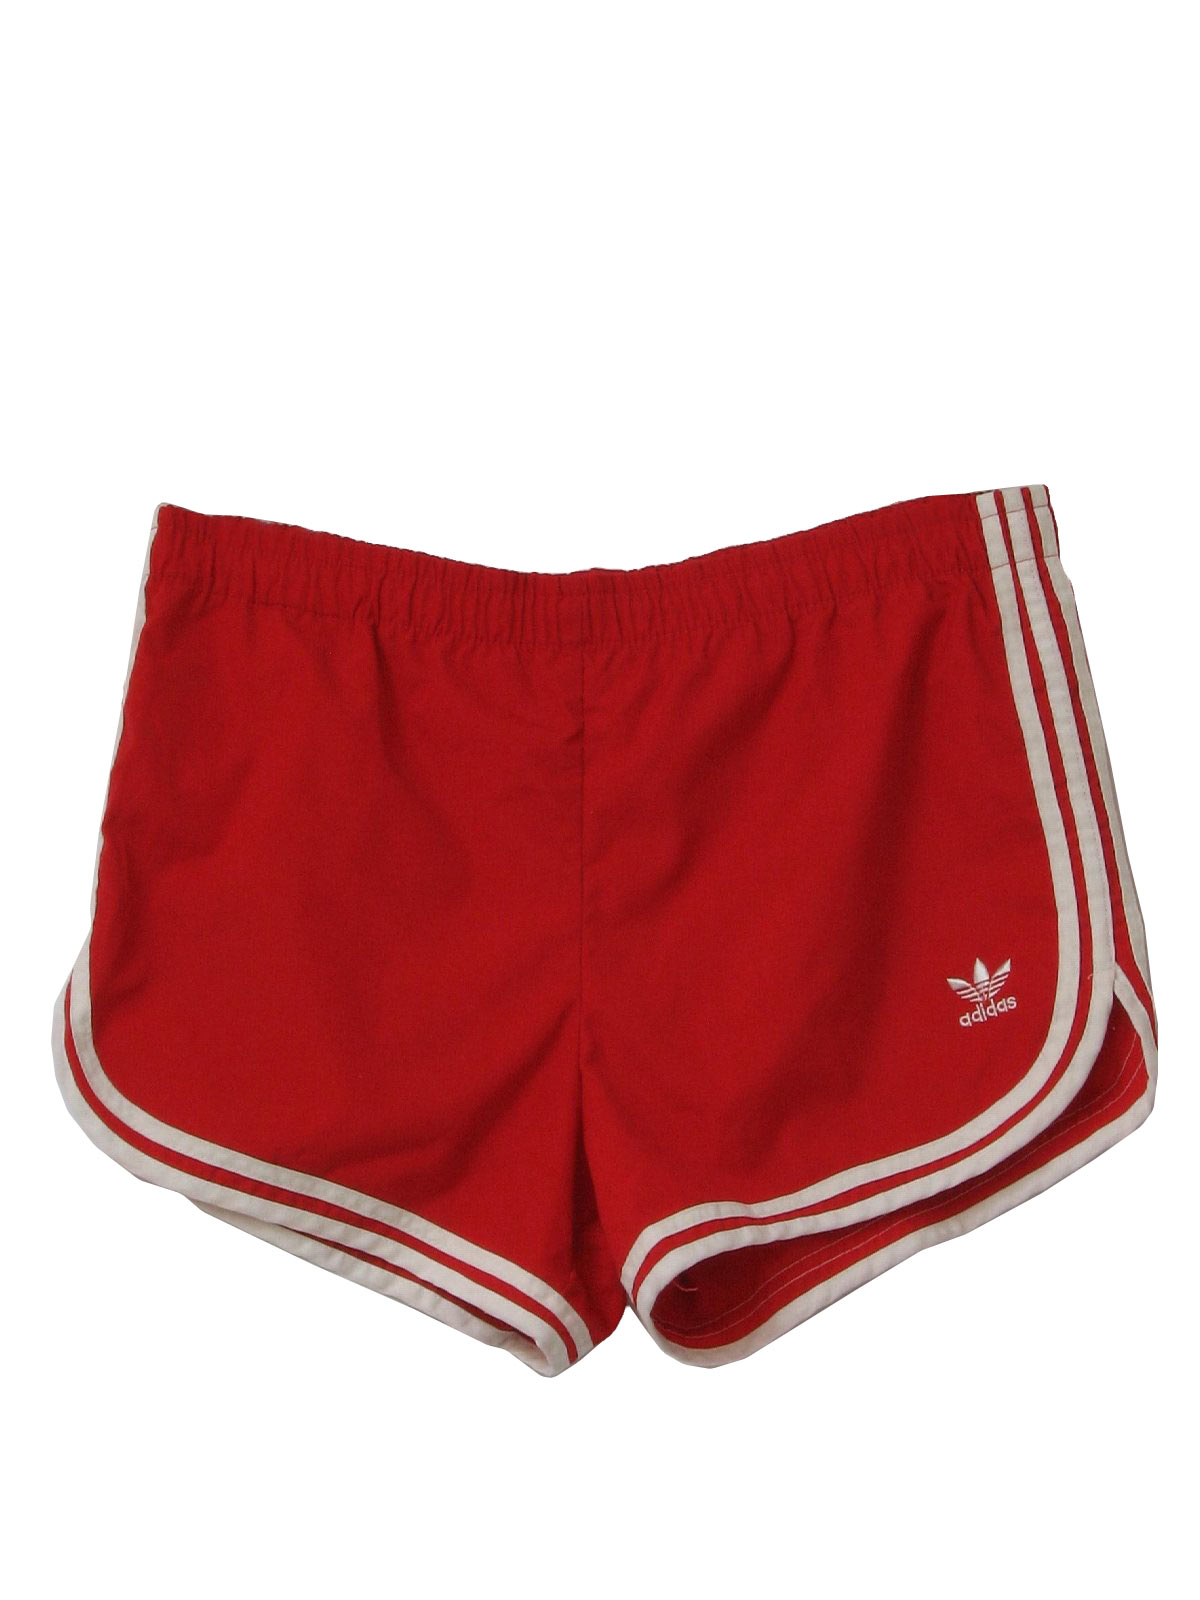 Vintage Adidas Eighties Swimsuit Swimwear  80s -Adidas- Mens red and ... efa89cabd